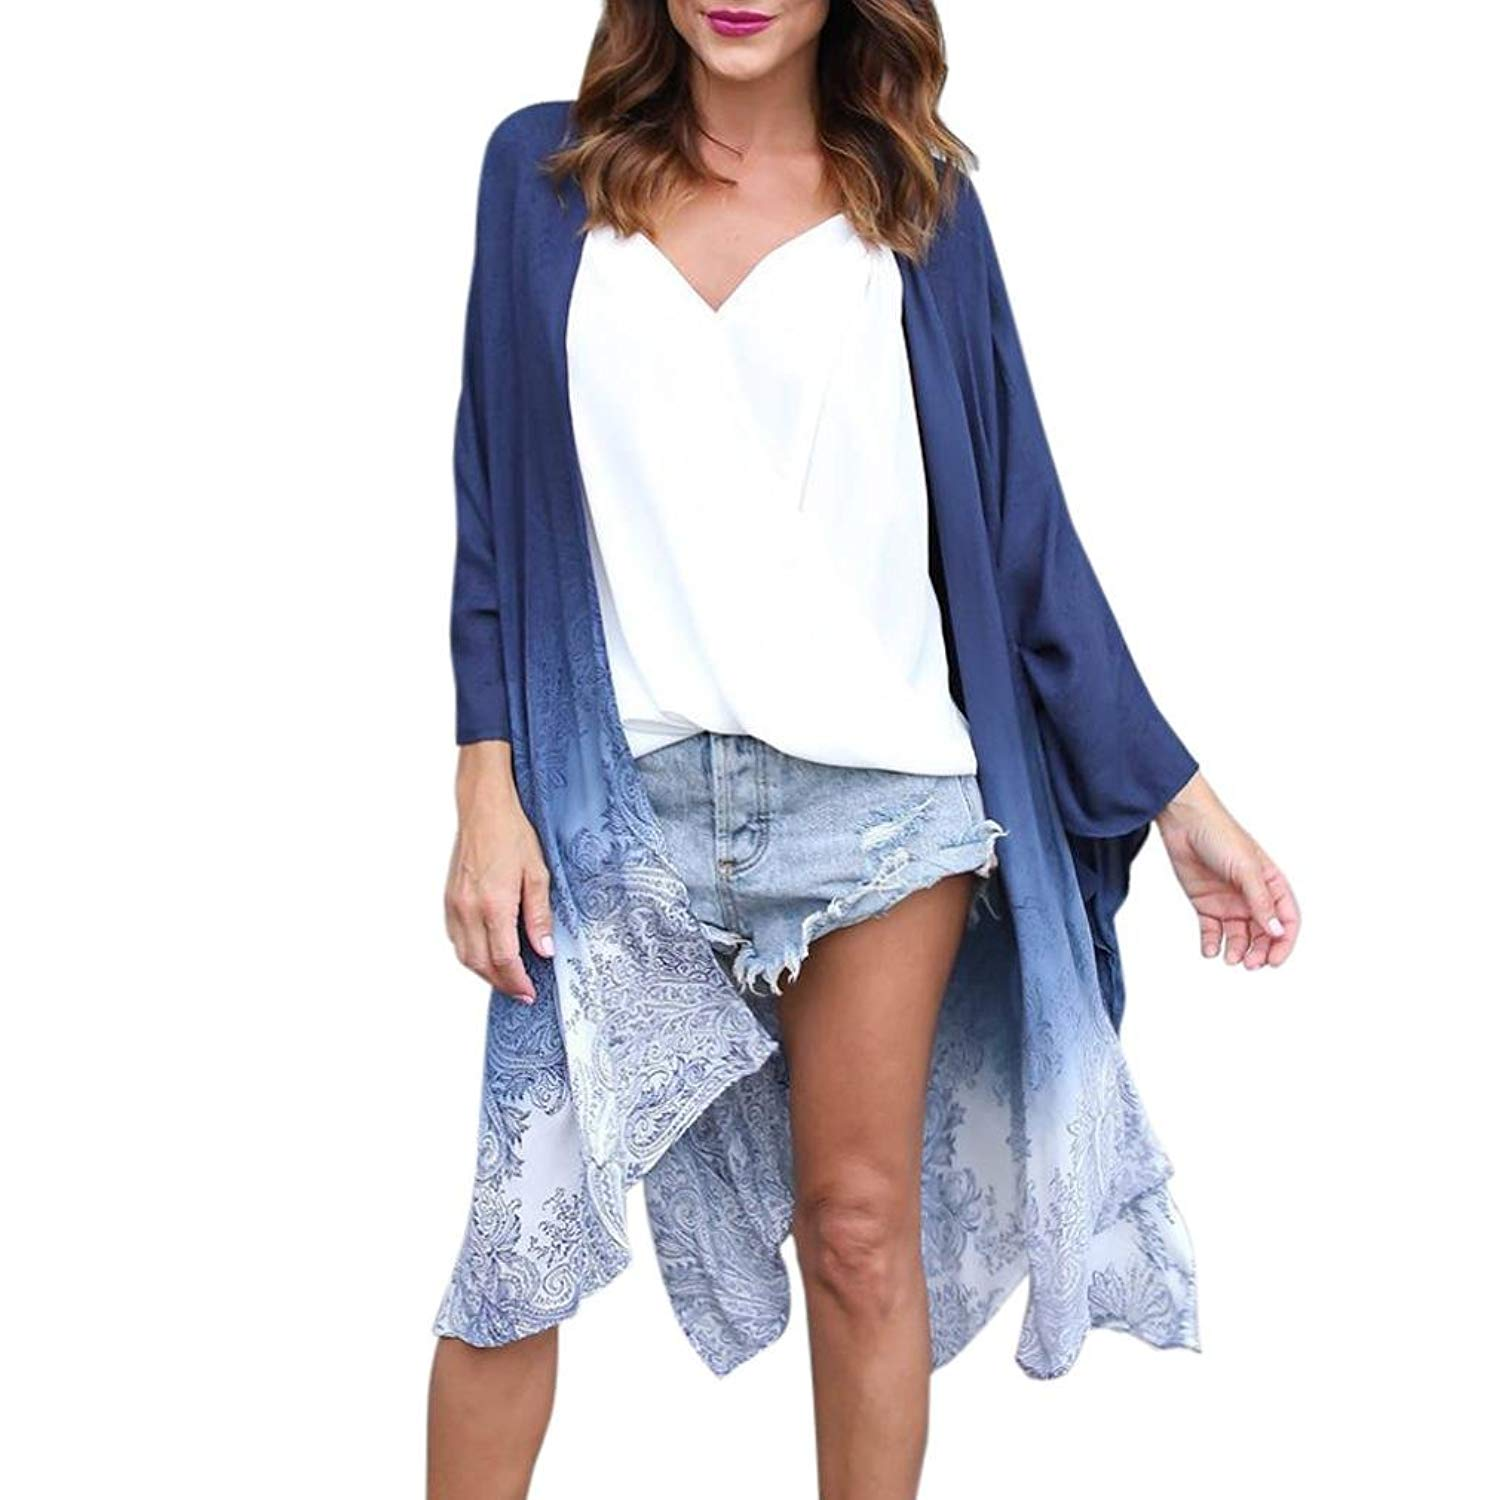 Hot Sale! FDelinK Womens Chiffon Floral Kimono Cardigan Cover Ups Casual Loose Blouse Tops Outwear